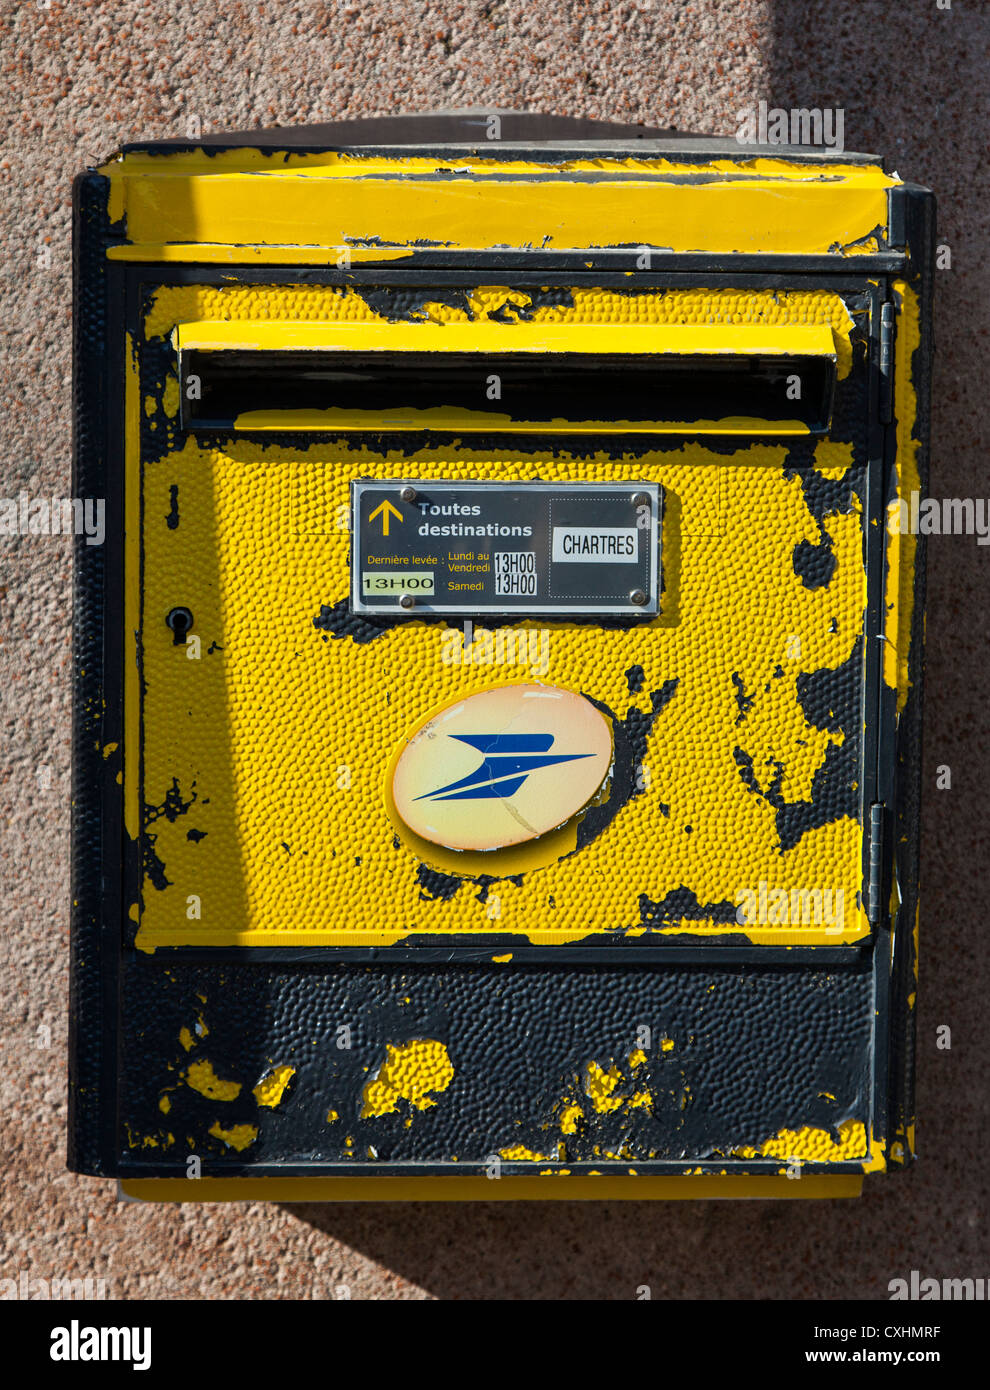 Tatty old French yellow post letter box, Chartres, Loire, France - Stock Image